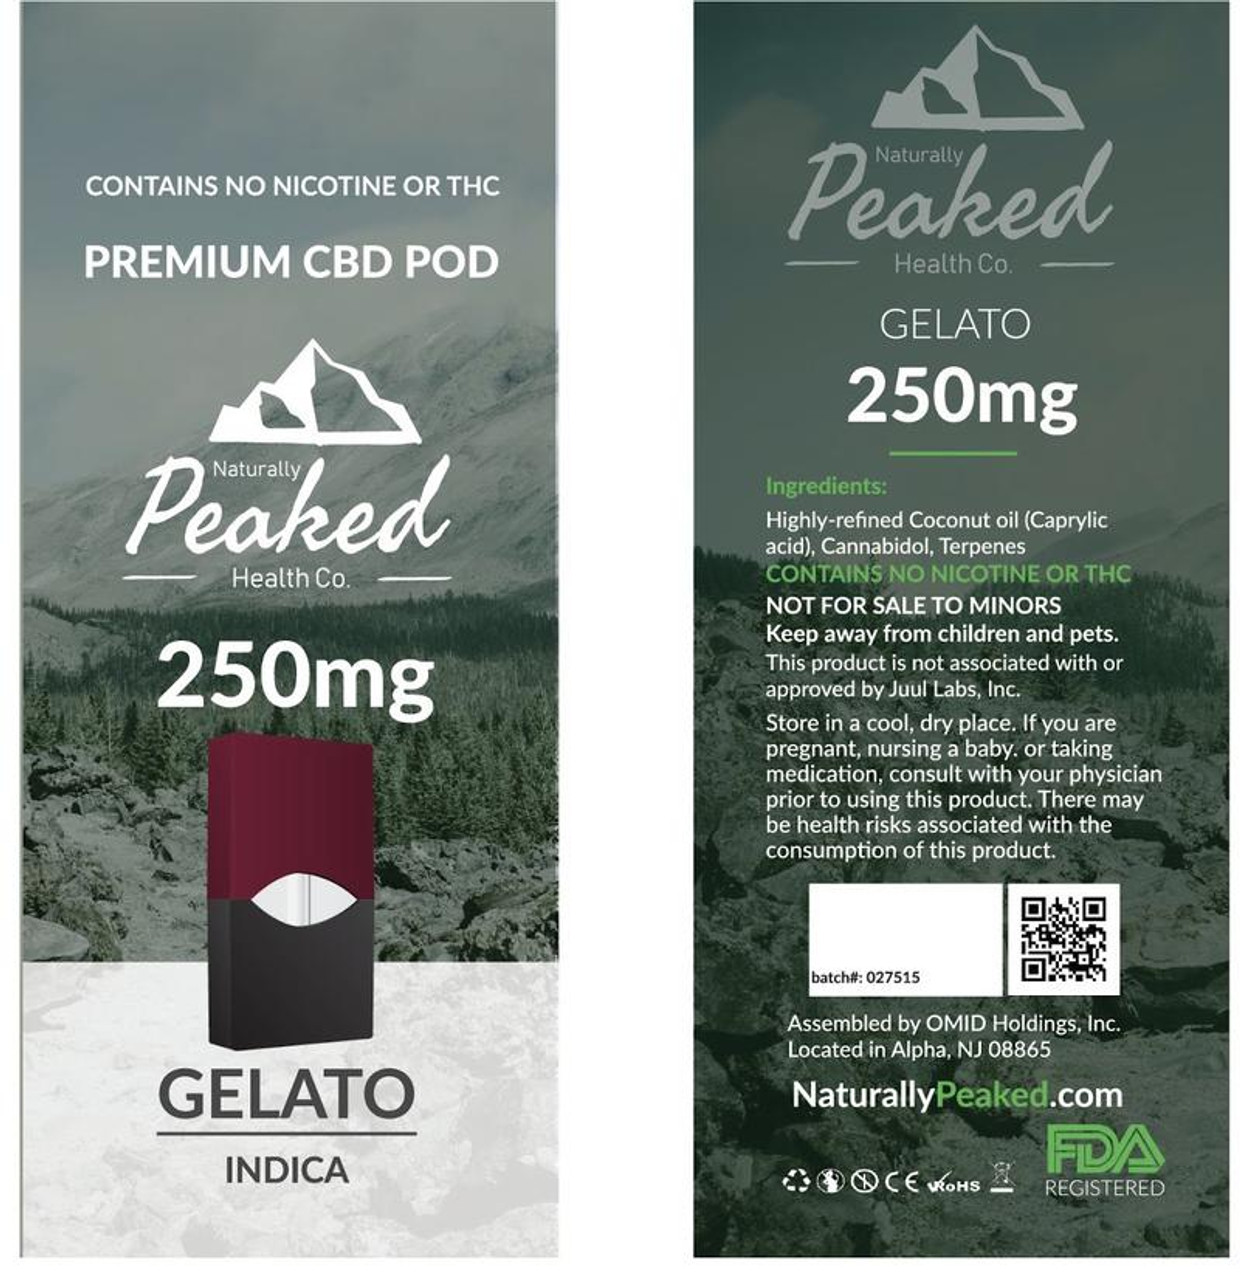 Classed as an indica, Gelato is really effective for stress and anxiety, producing relaxing and mood-enhancing benefits. The uplifting nature of this strain may also give you a creativity spark. Like all indicas, Gelato can be used to combat pain and may also be helpful for treating headaches. Naturally Peaked 100% Organic CBD Vape Pod. 250MG of CBD per Pod. Each Package Contains 1 Vape Pod